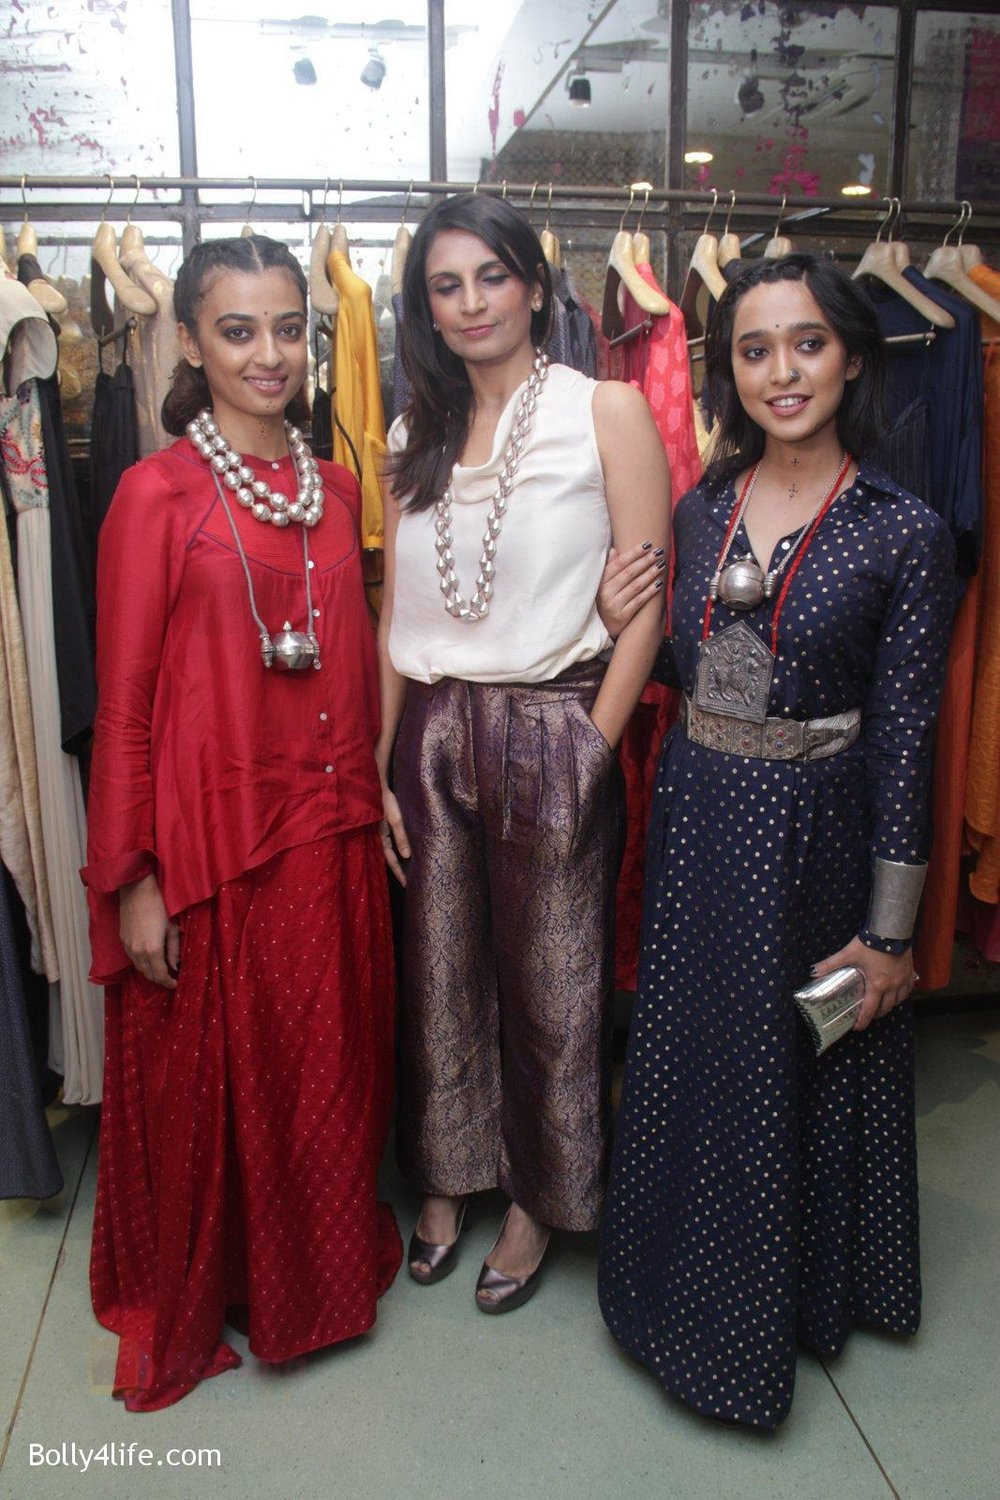 Radhika-Apte-Sayani-Gupta-unveil-Festive-Edit-of-new-Luxury-Pret-label-AMOH-by-Designers-Monica-Karishma-of-JADE-on-26th-Sept-2016-18.jpg